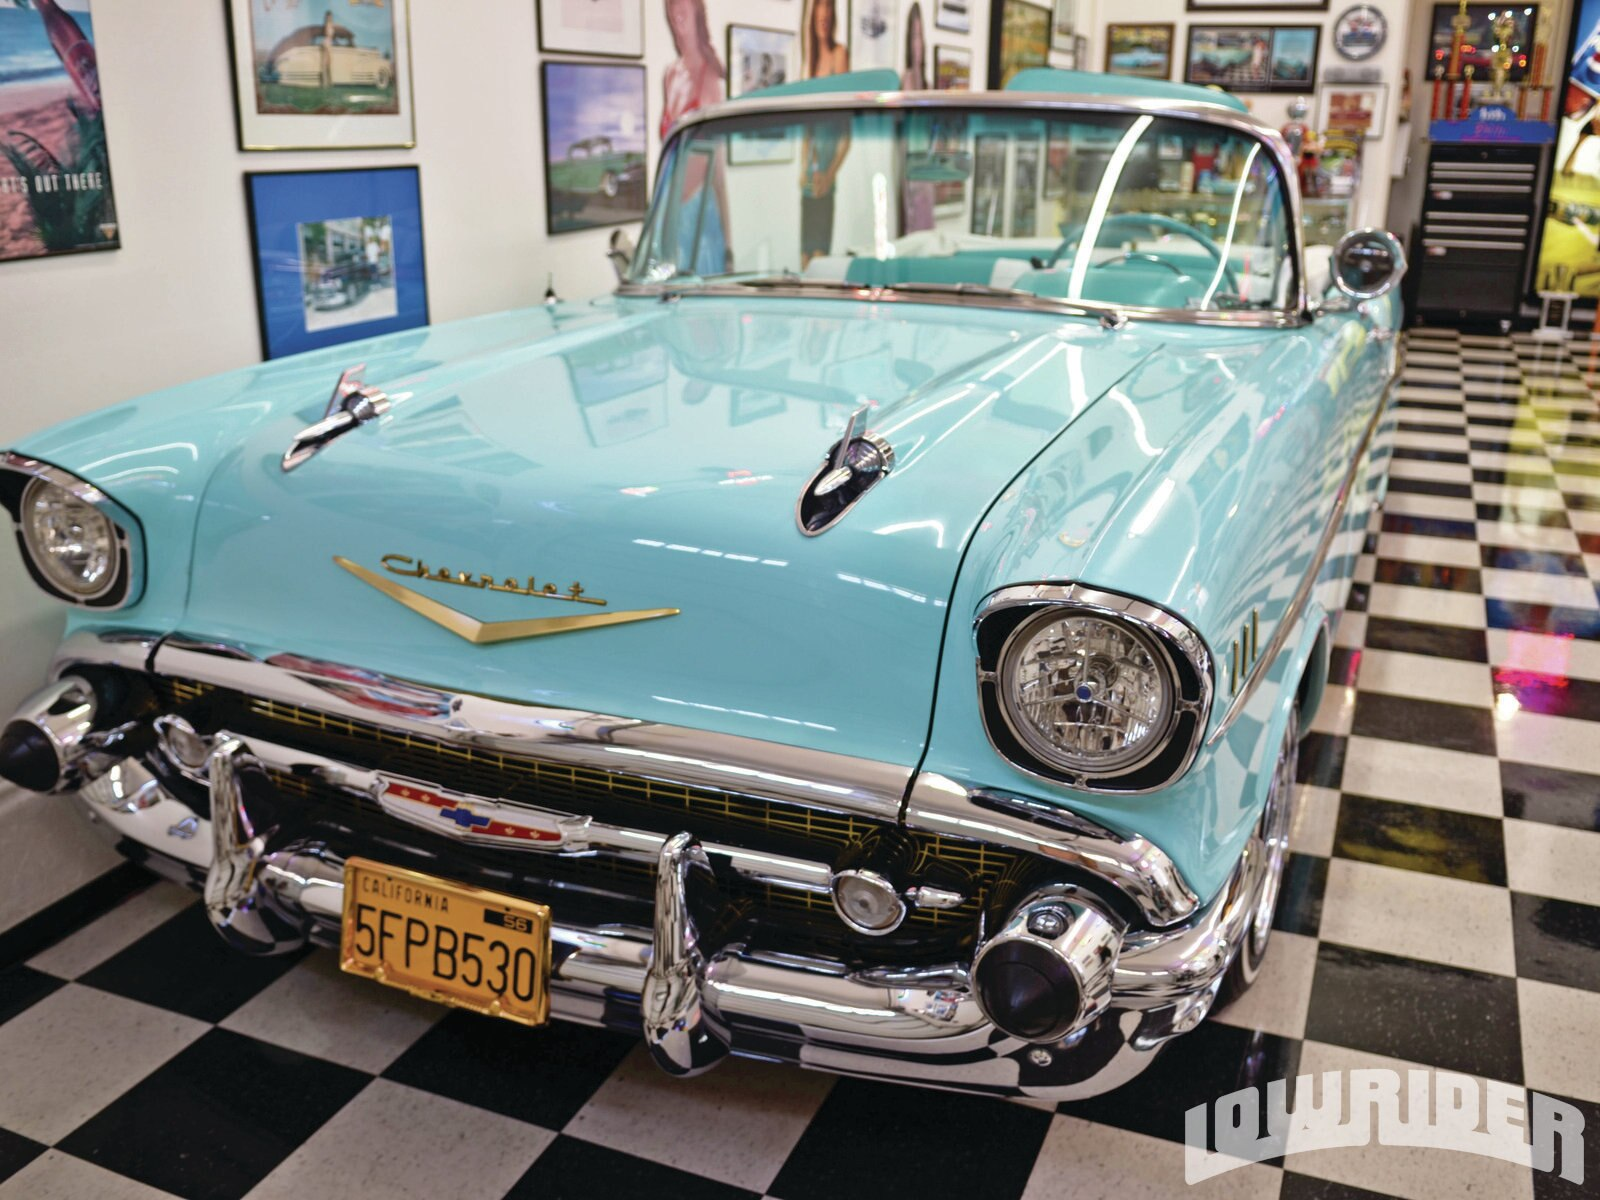 1957 Chevrolet Bel Air Convertible - Lowrider Magazine